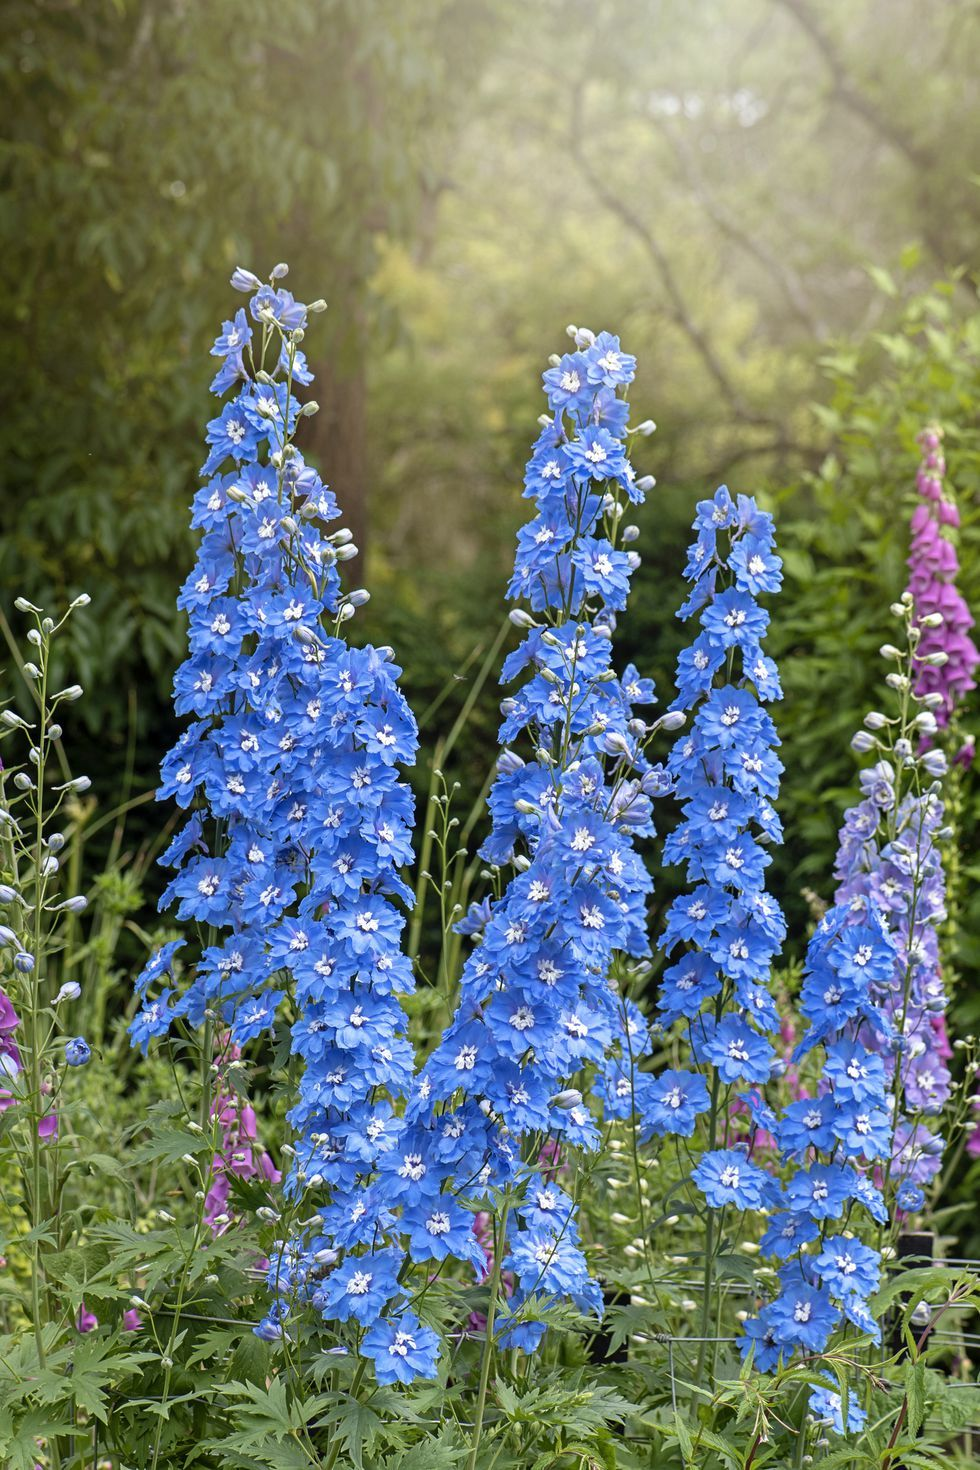 These Are The Best Blue Flowers For Adding The Spectacular And